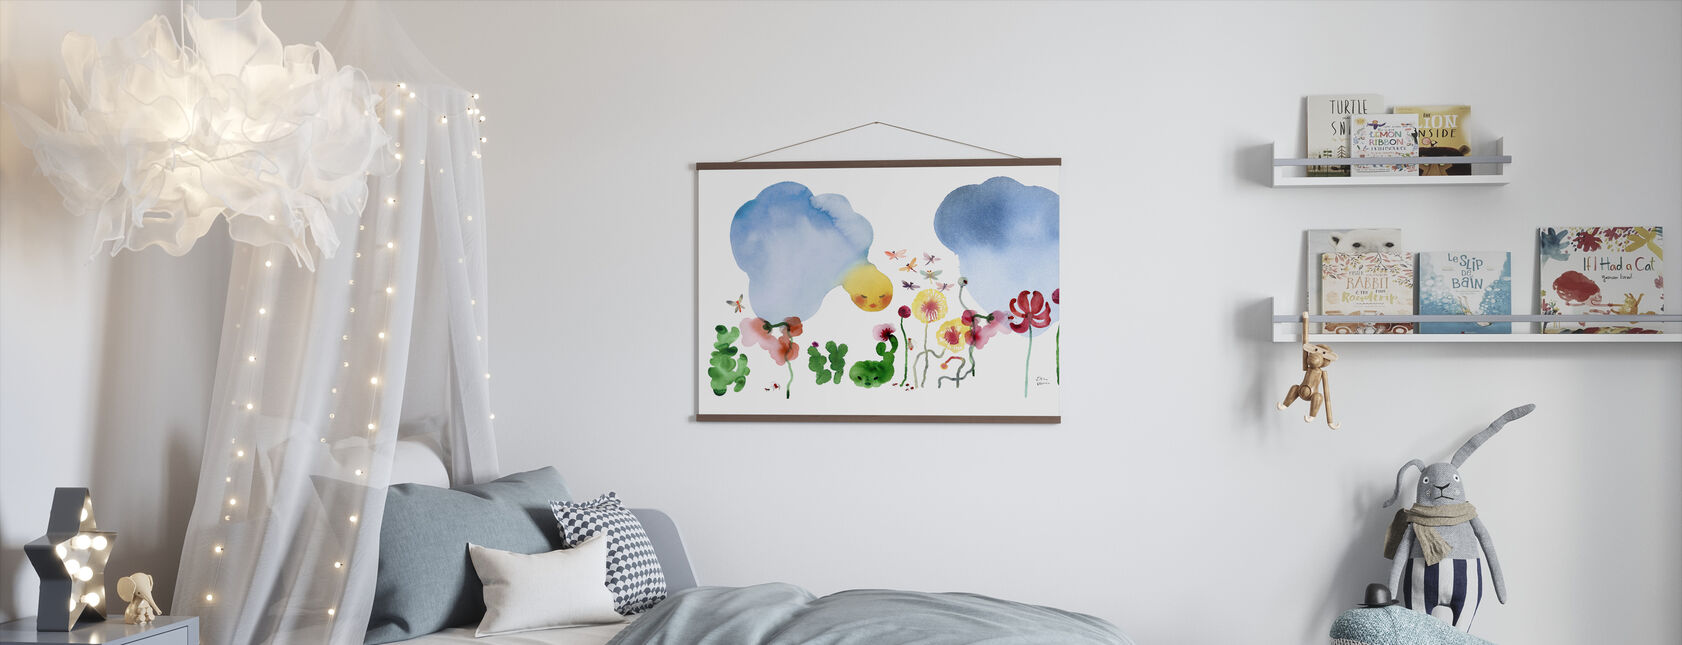 Water Color Flowers I - Poster - Kids Room